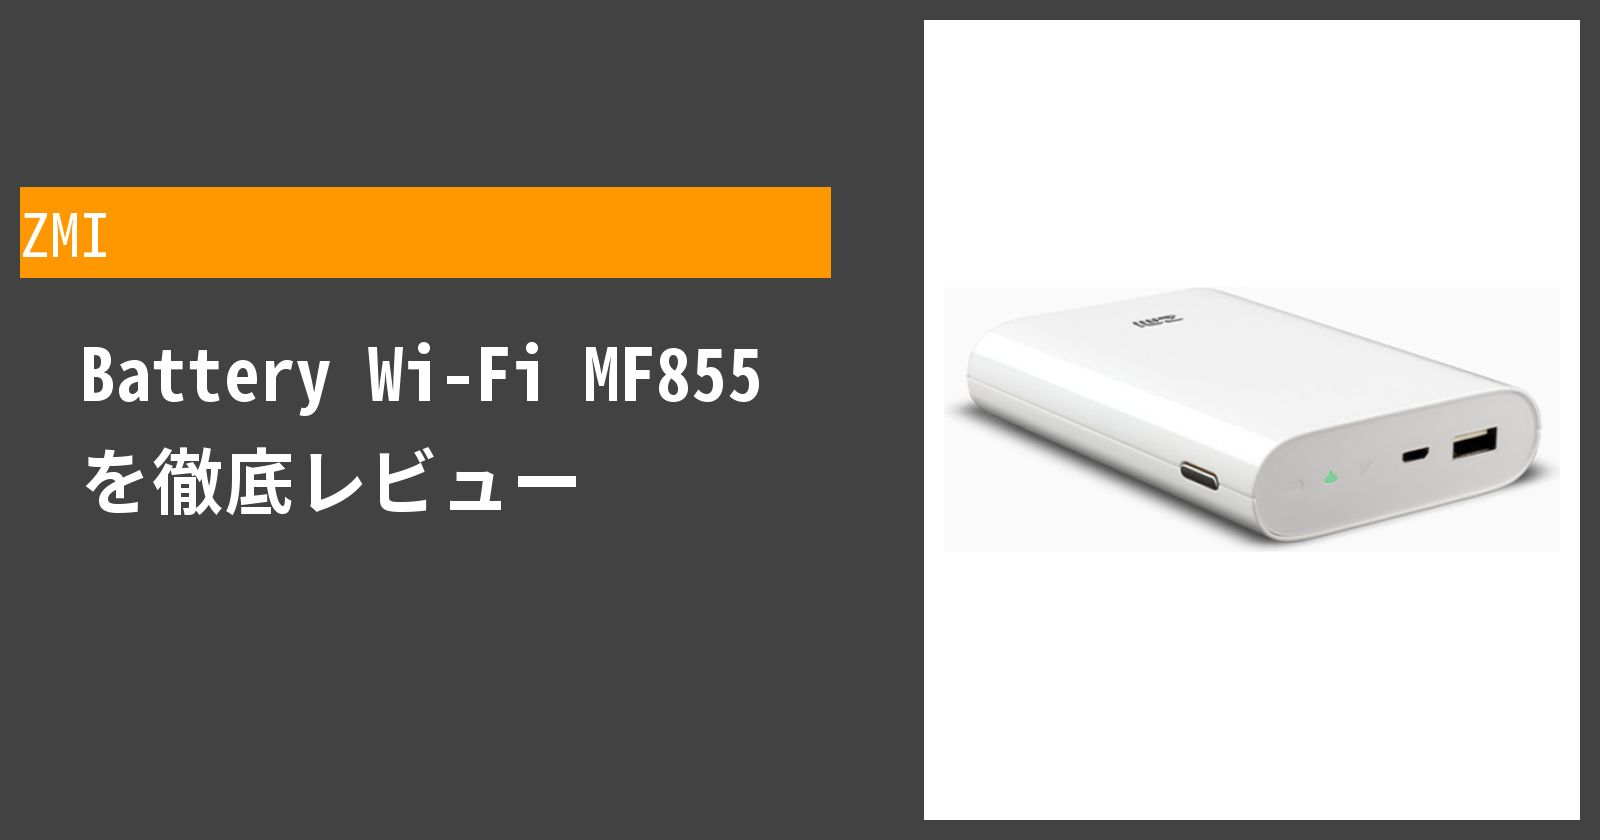 Battery Wi-Fi MF855を徹底評価